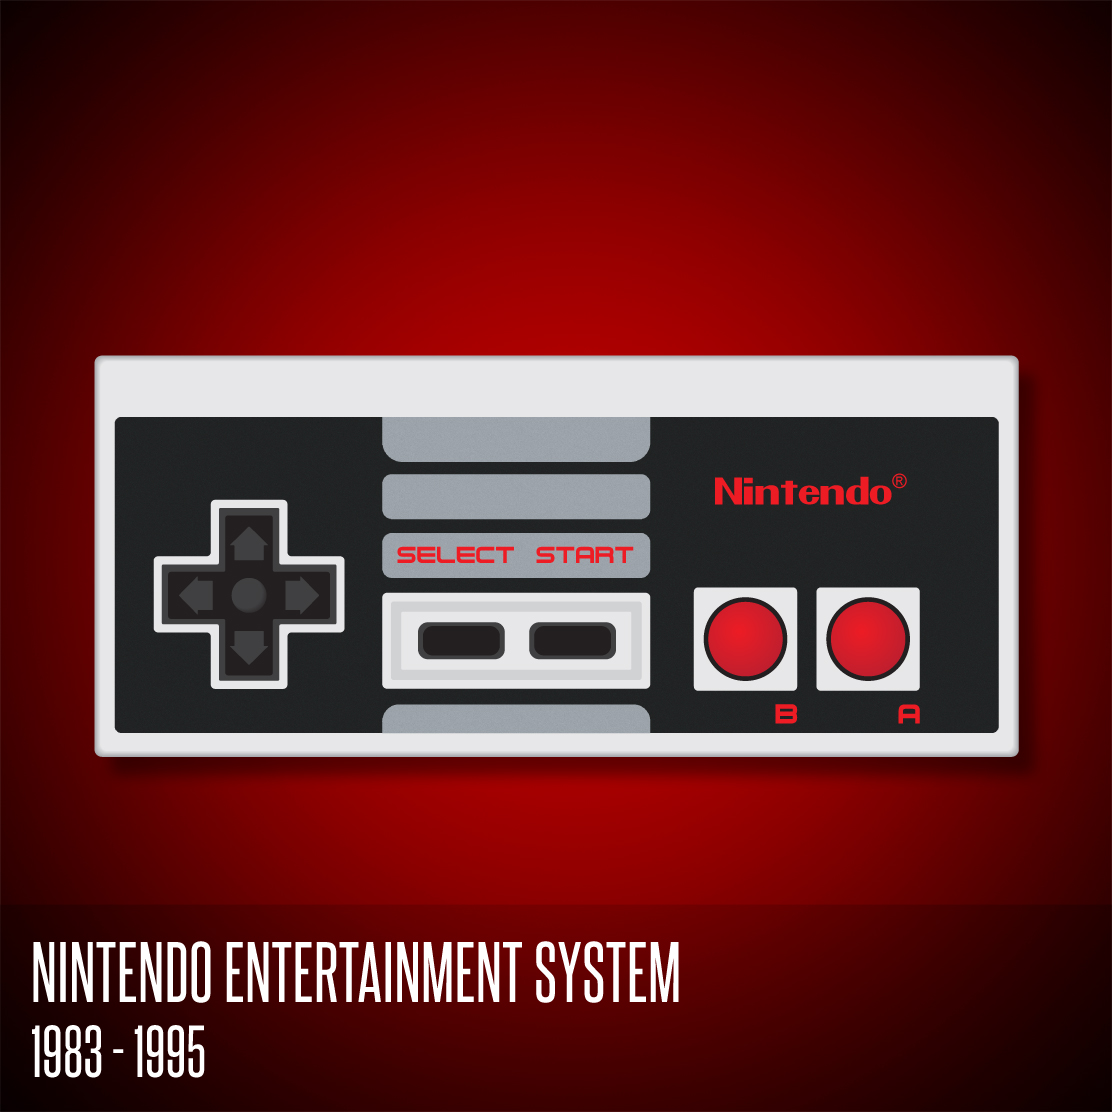 nintendo entertainment system controller by deebeeart on. Black Bedroom Furniture Sets. Home Design Ideas